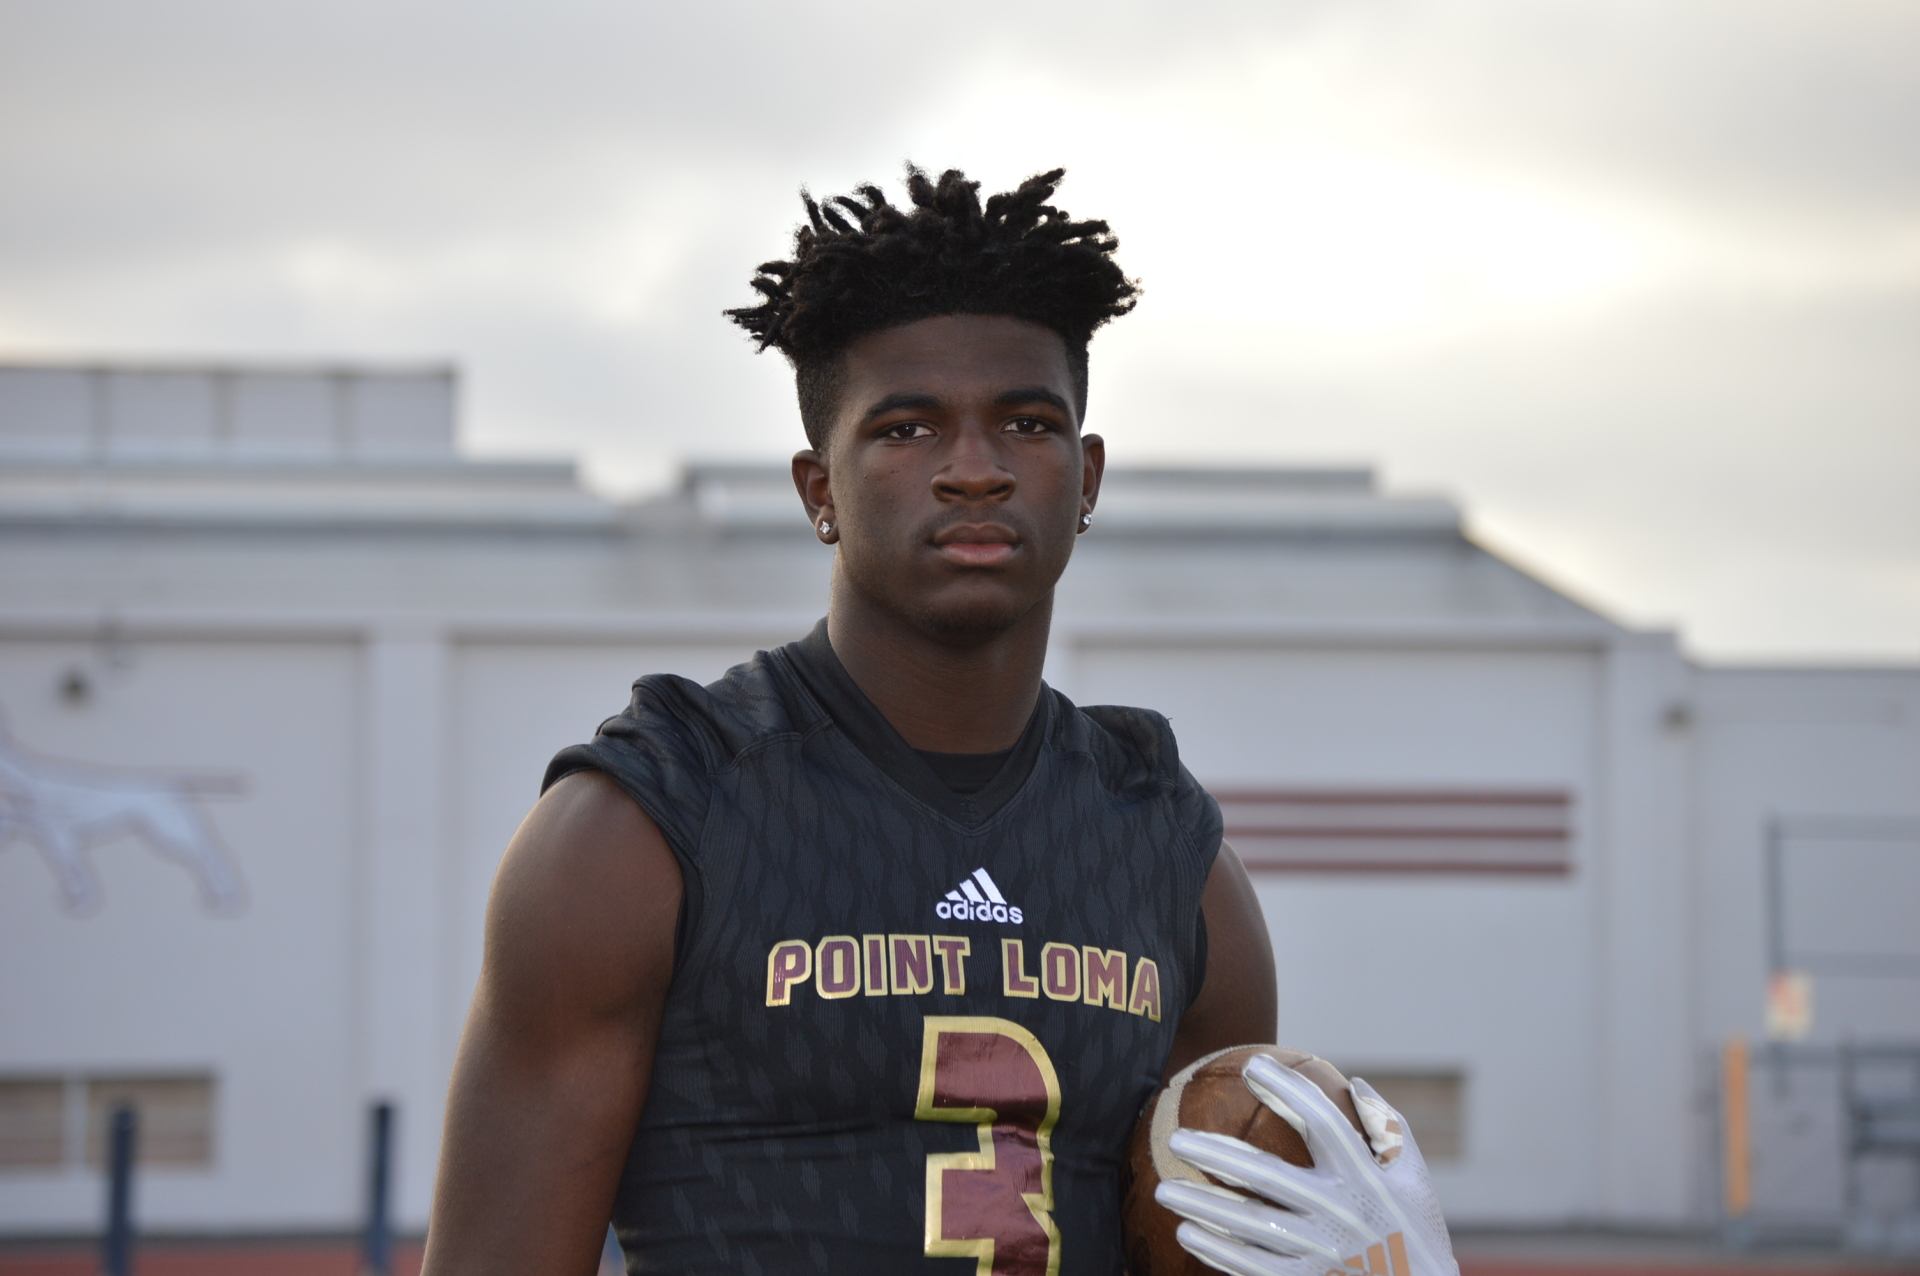 Point Loma High School - WR JL Skinner